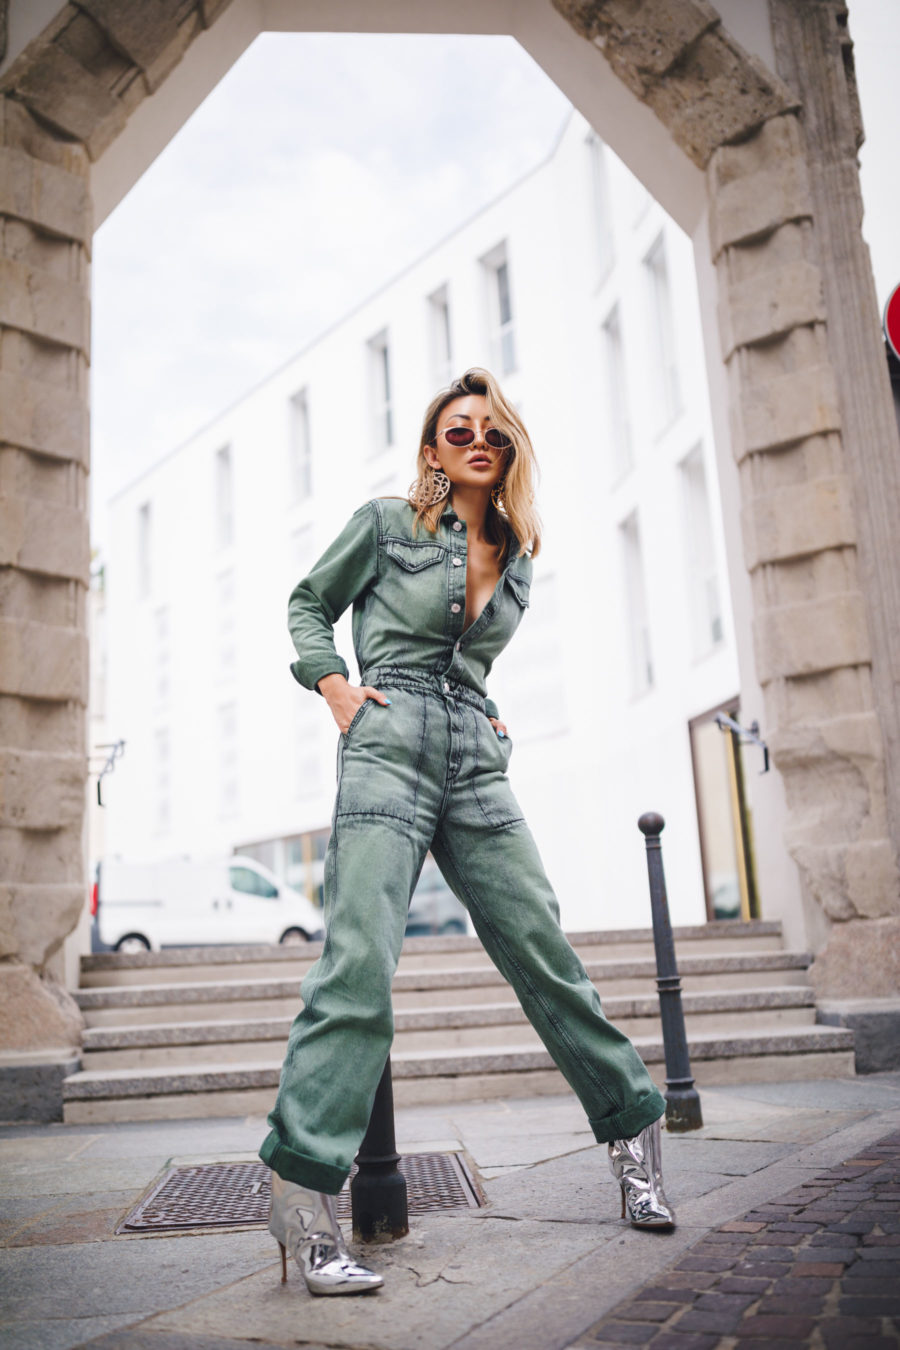 fashion blogger jessica wang shares ugly fashion trends of 2020 wearing denim boilersuit and silver booties // Notjessfashion.com